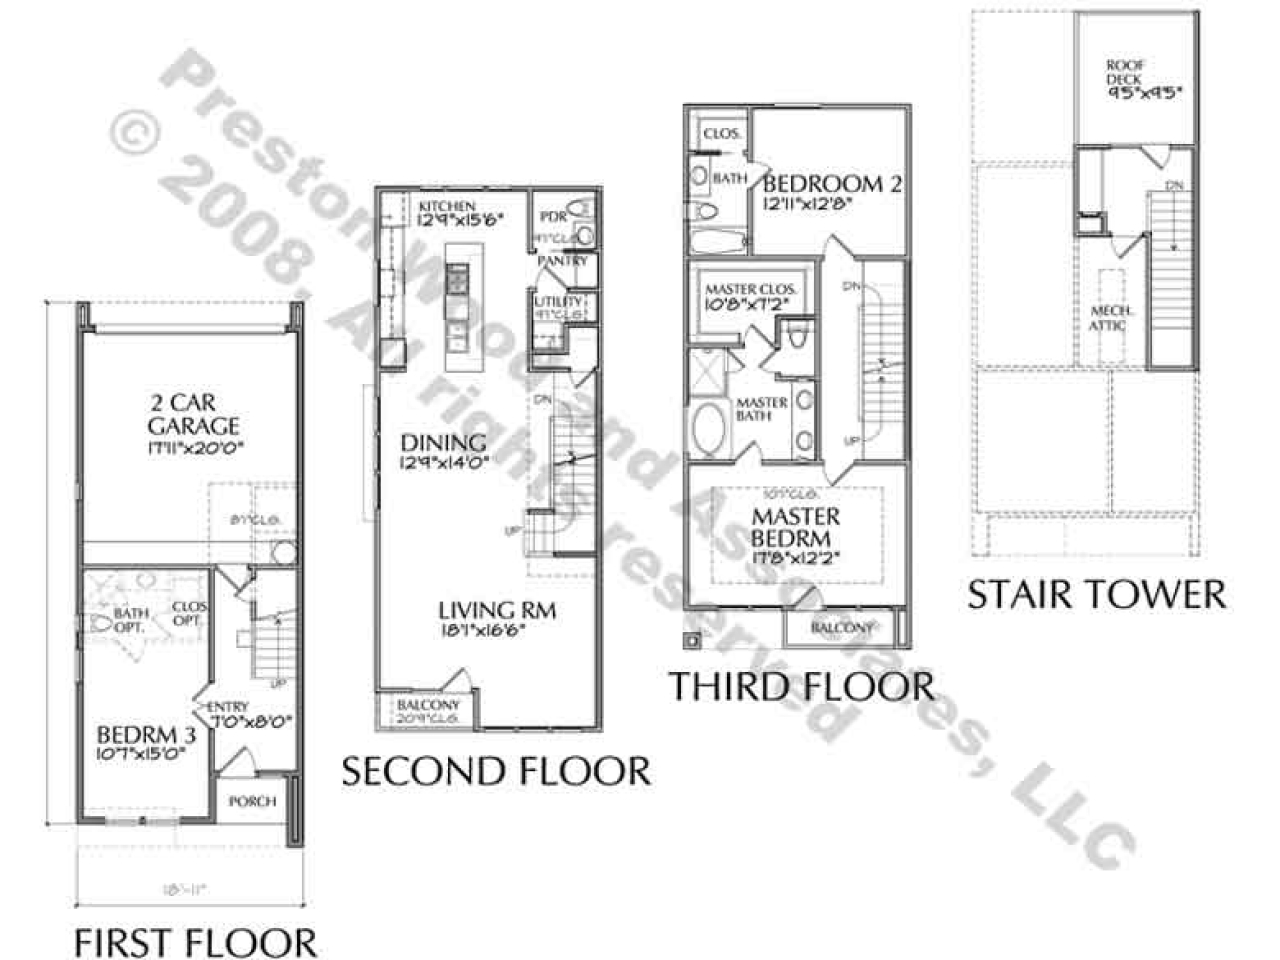 Luxury townhouse floor plans modern townhouse floor plans for Luxury townhouse plans